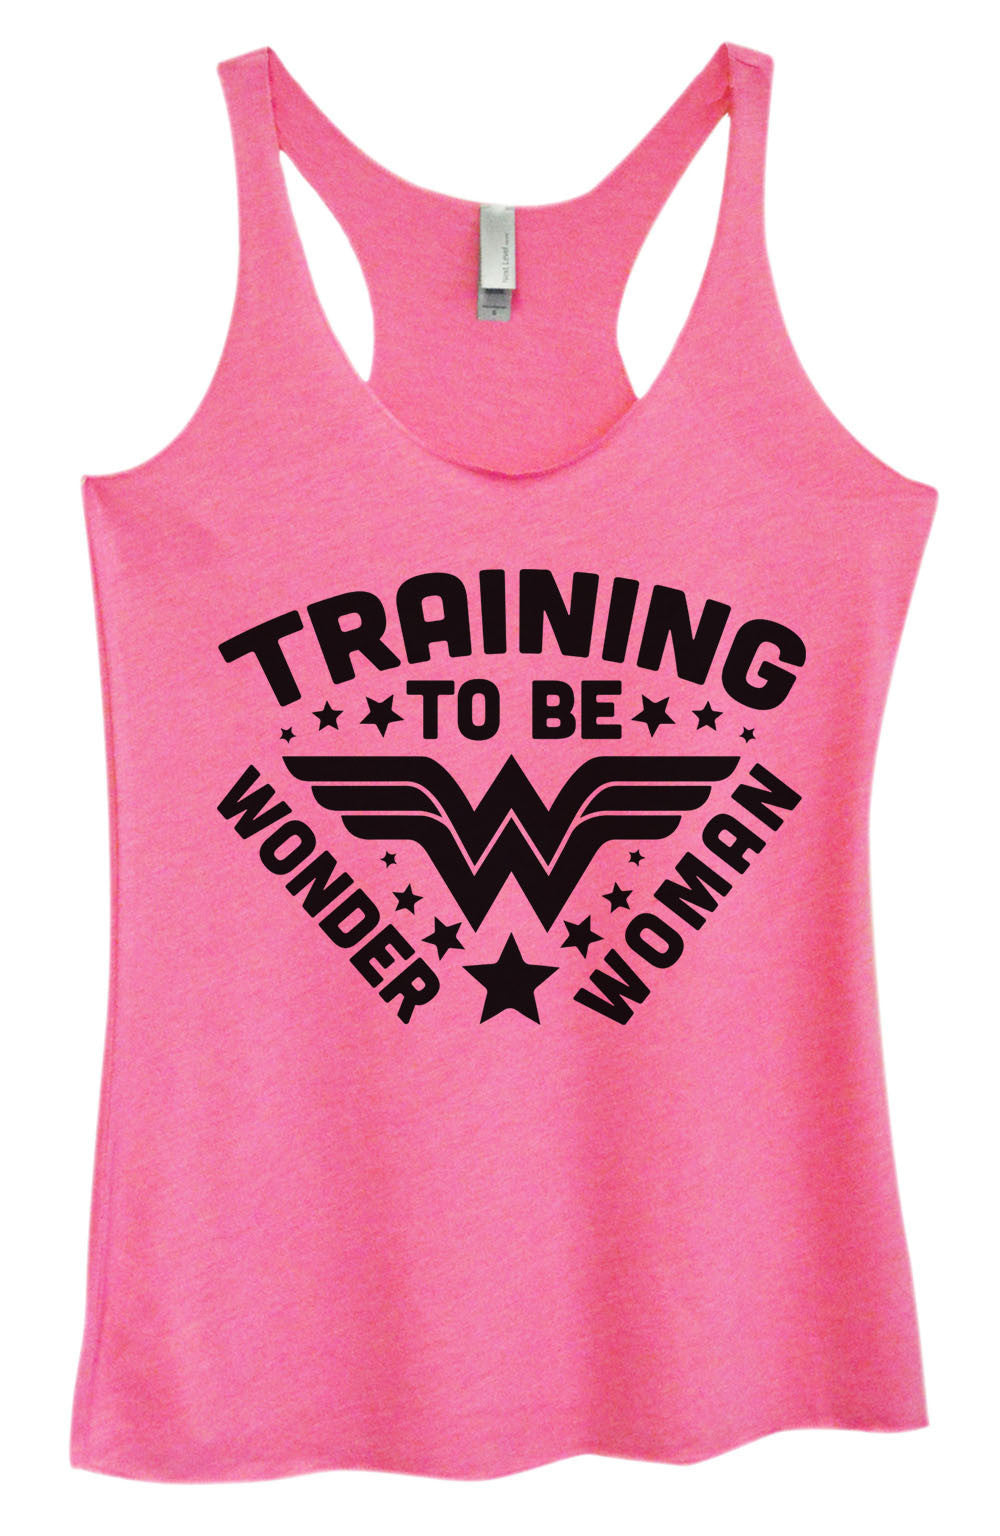 Womens Fashion Triblend Tank Top - Training To Be Wonder Woman - Tri-966 - Funny Shirts Tank Tops Burnouts and Triblends  - 3